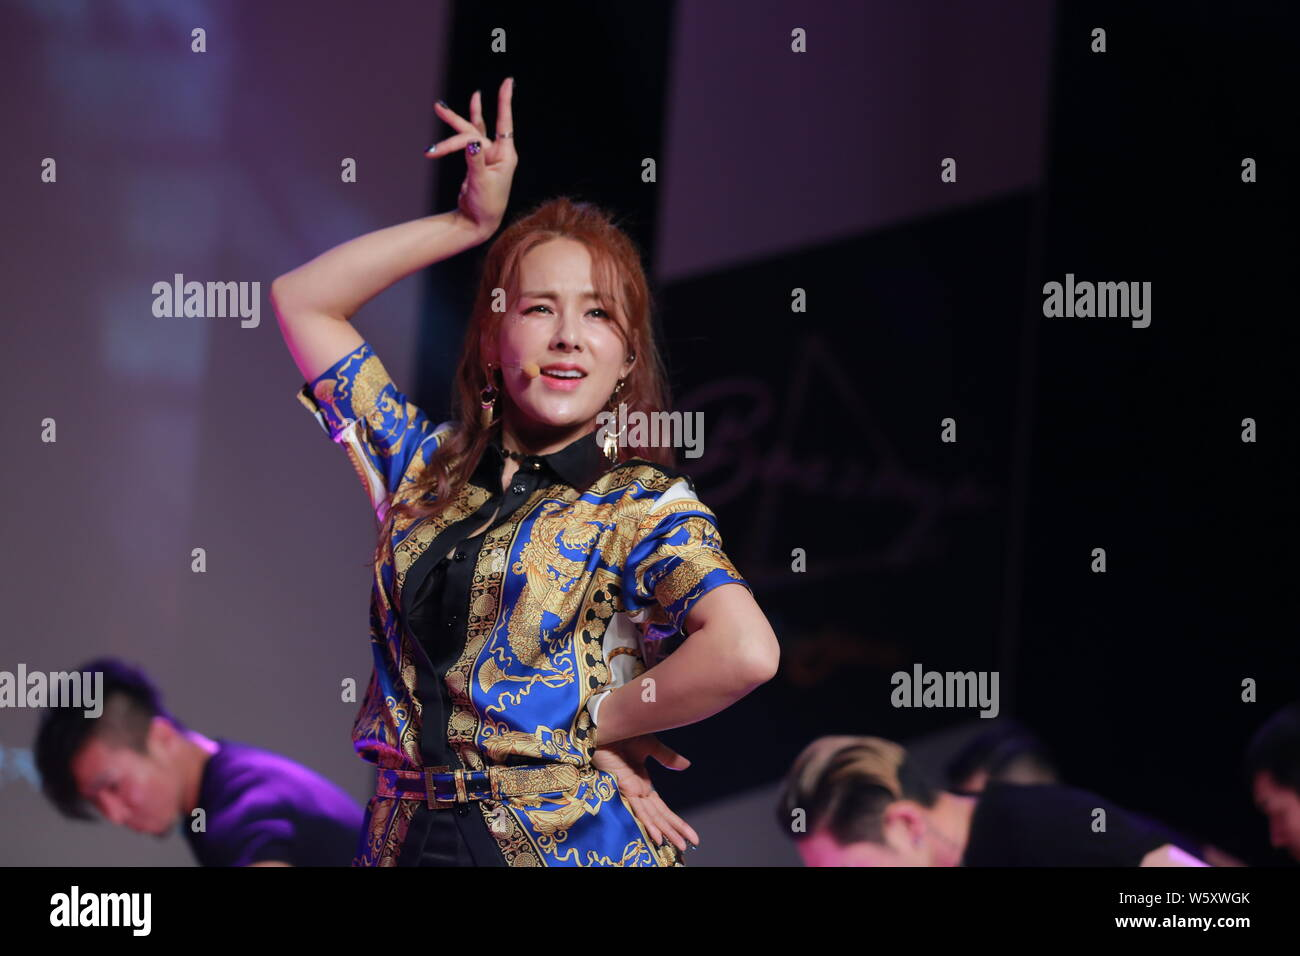 Chae Yeon Stock Photos & Chae Yeon Stock Images - Alamy